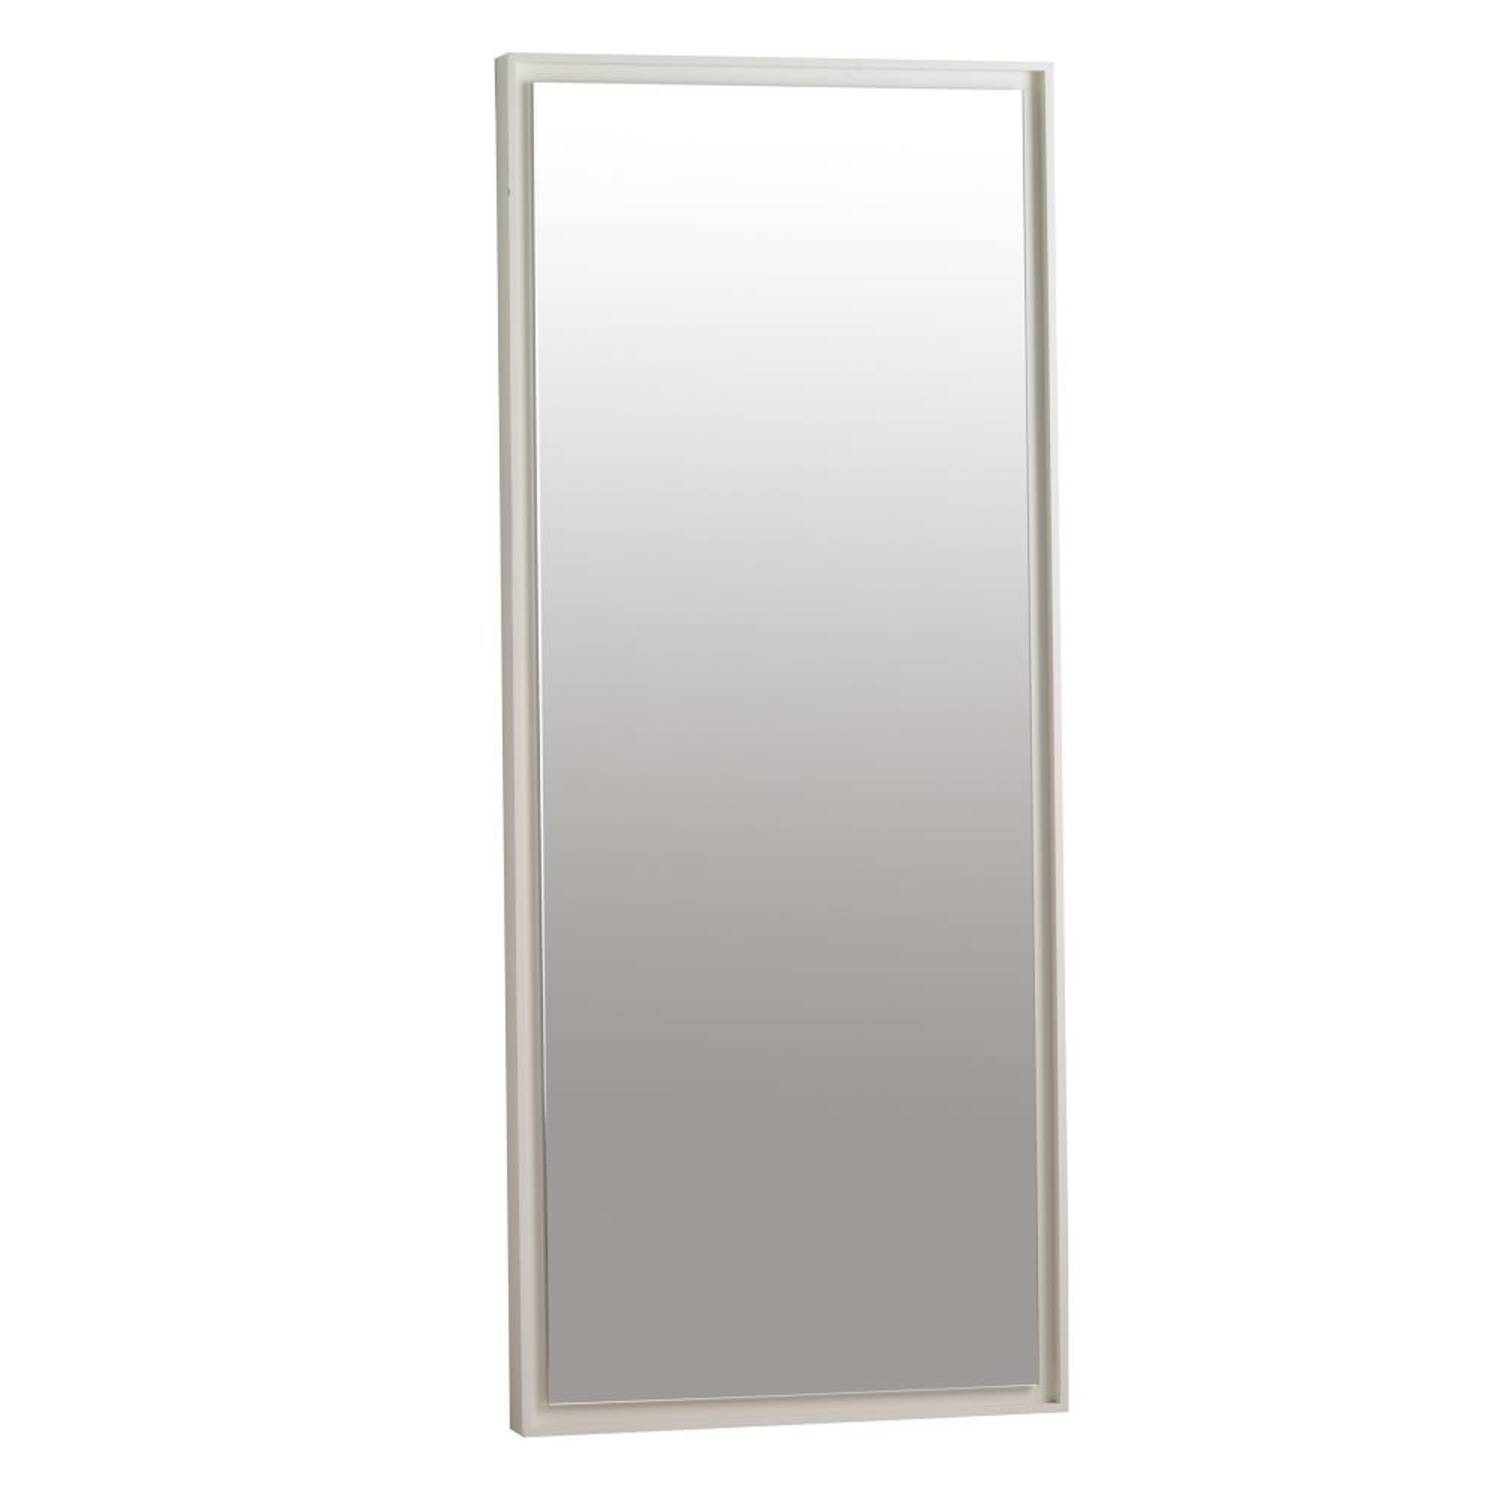 West Elm Small Floating Wood Wall Mirror - image-2